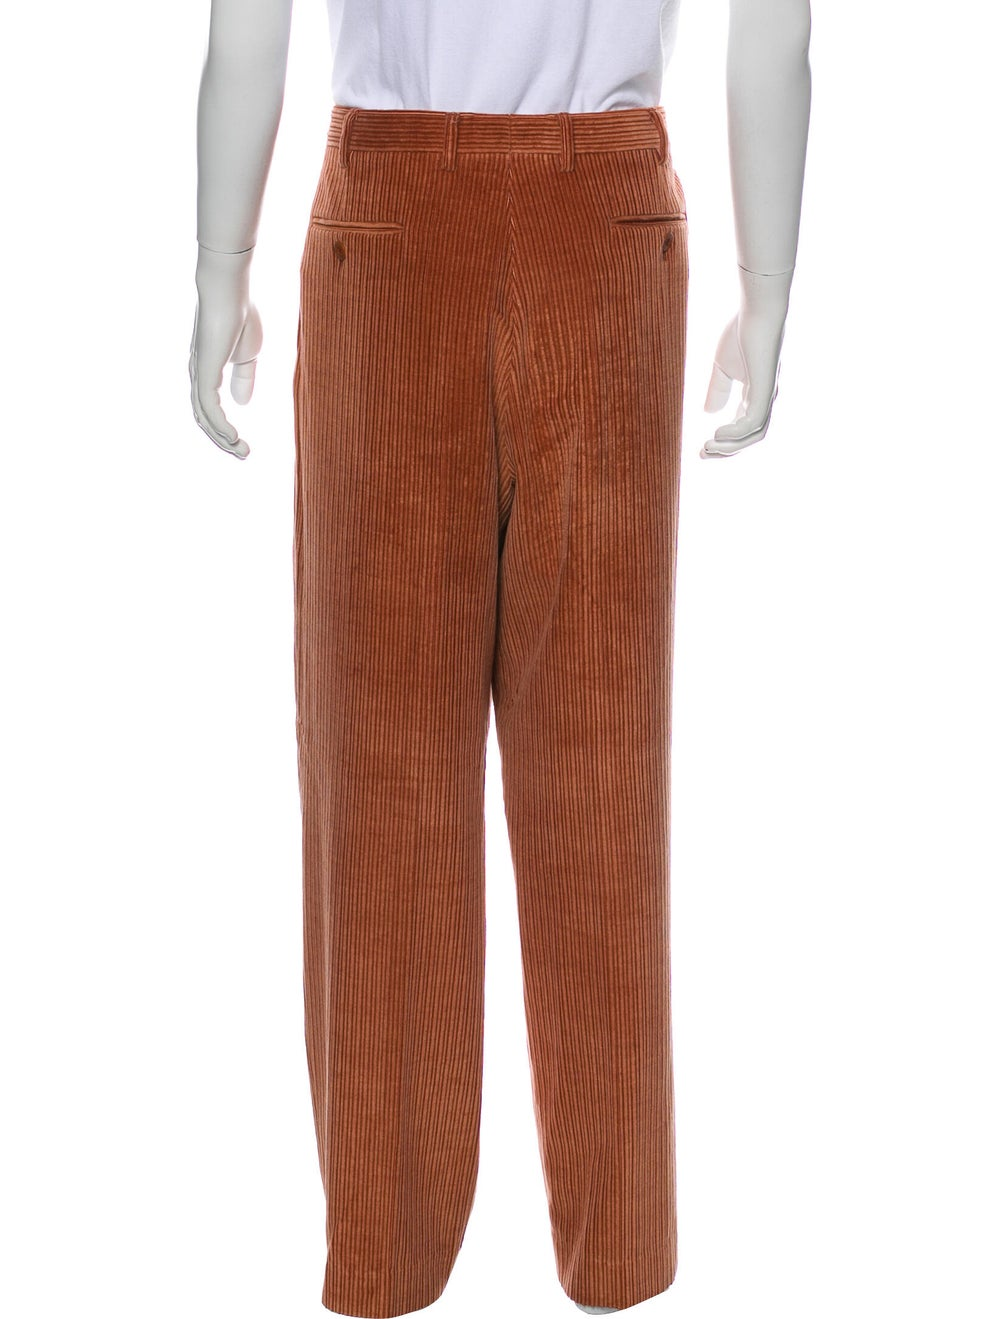 Brioni Corduroy Pants Red - image 3